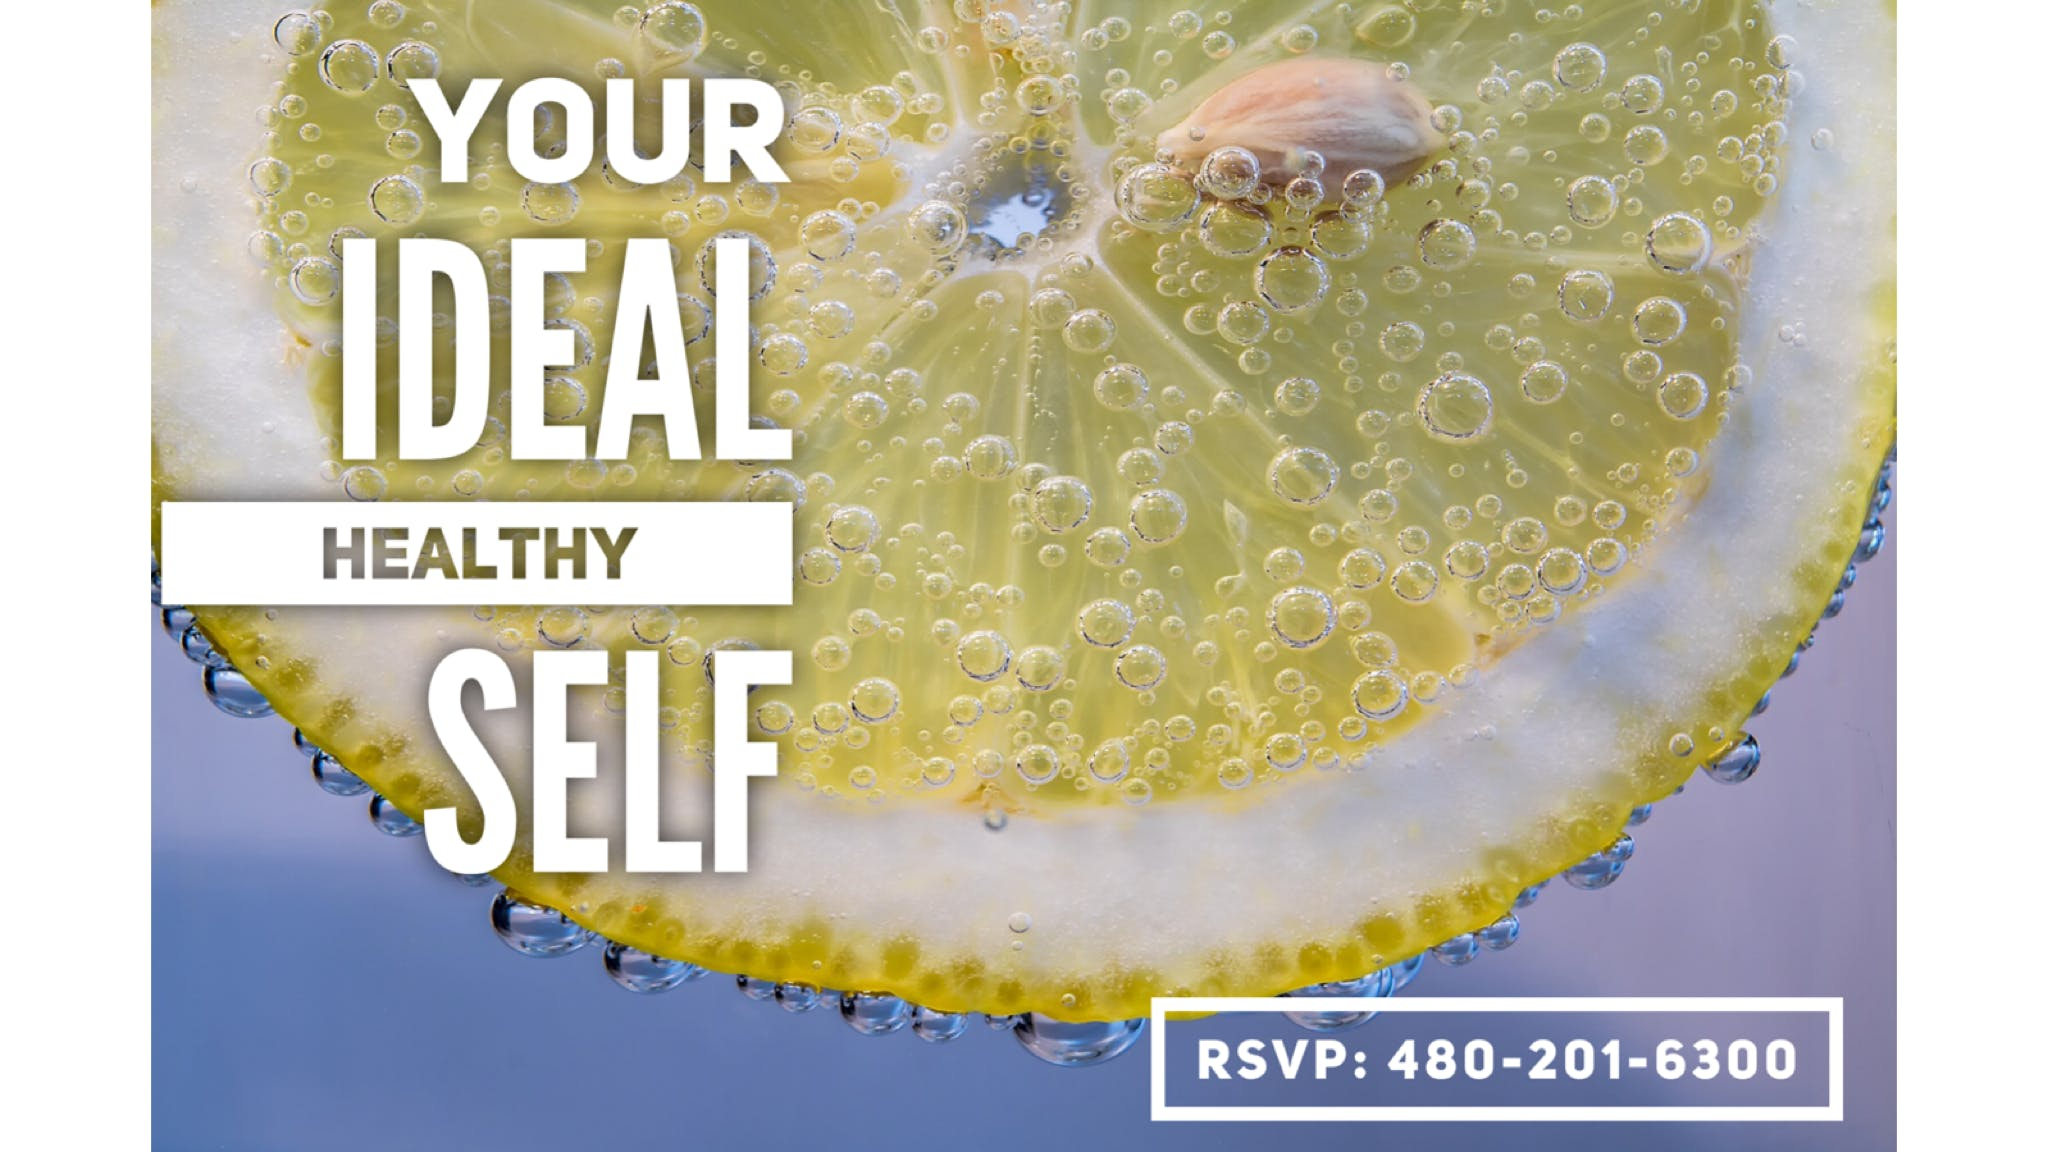 Your Ideal Healthy SELF